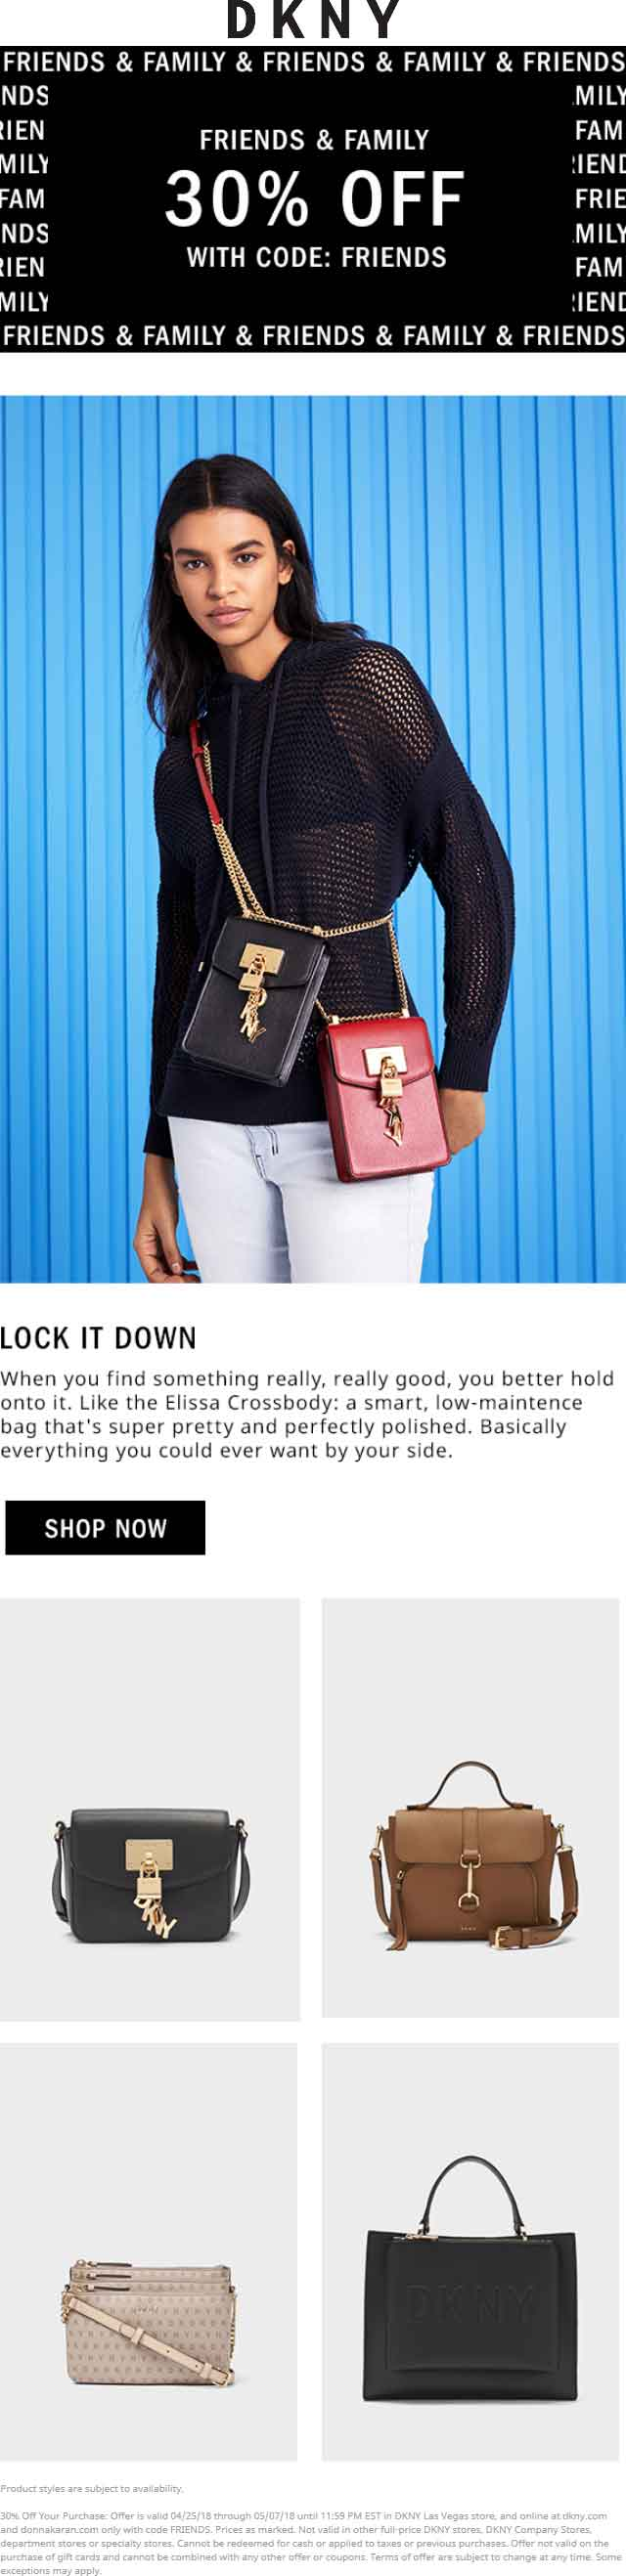 DKNY.com Promo Coupon 30% off at DKNY, or online via promo code FRIENDS